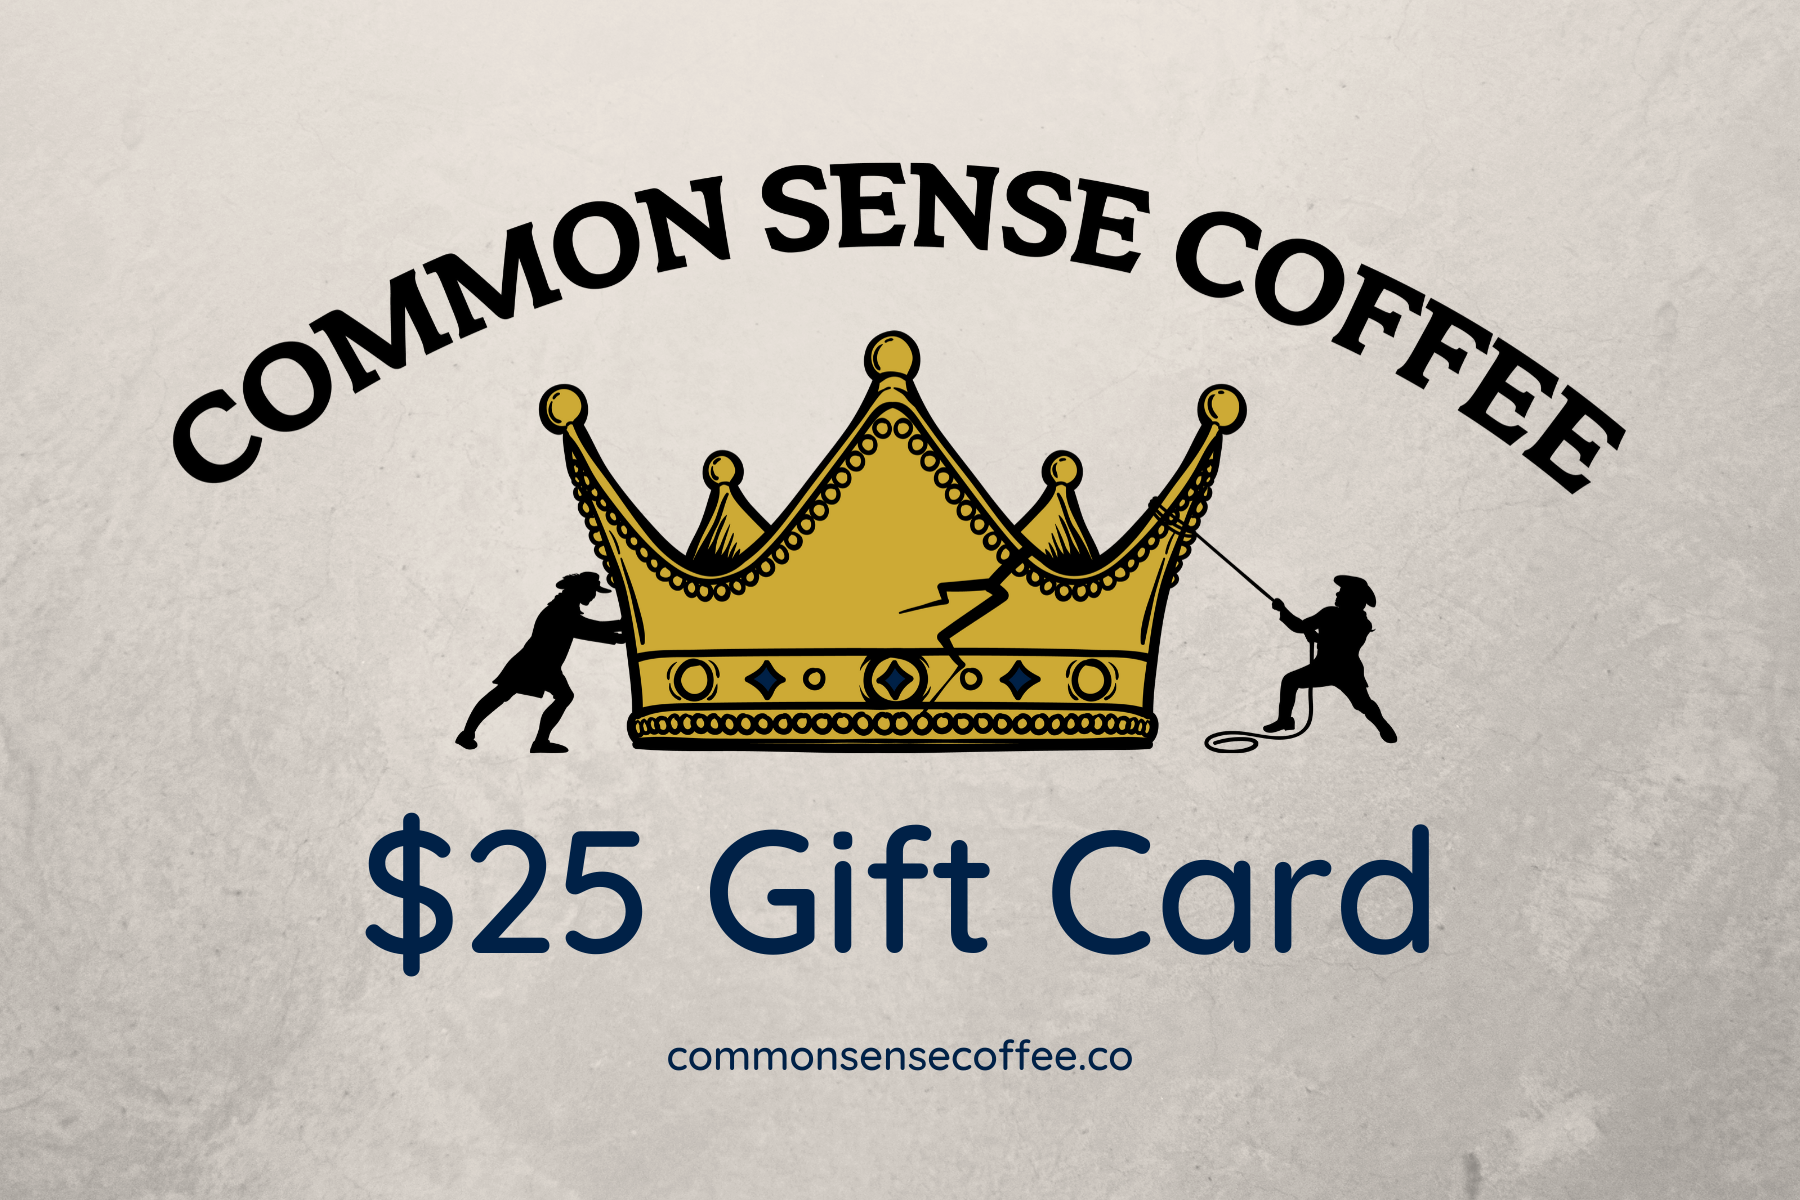 The Common Sense Coffee $25 gift card lets you give the perfect gift to your friends and family that want great tasting coffee.